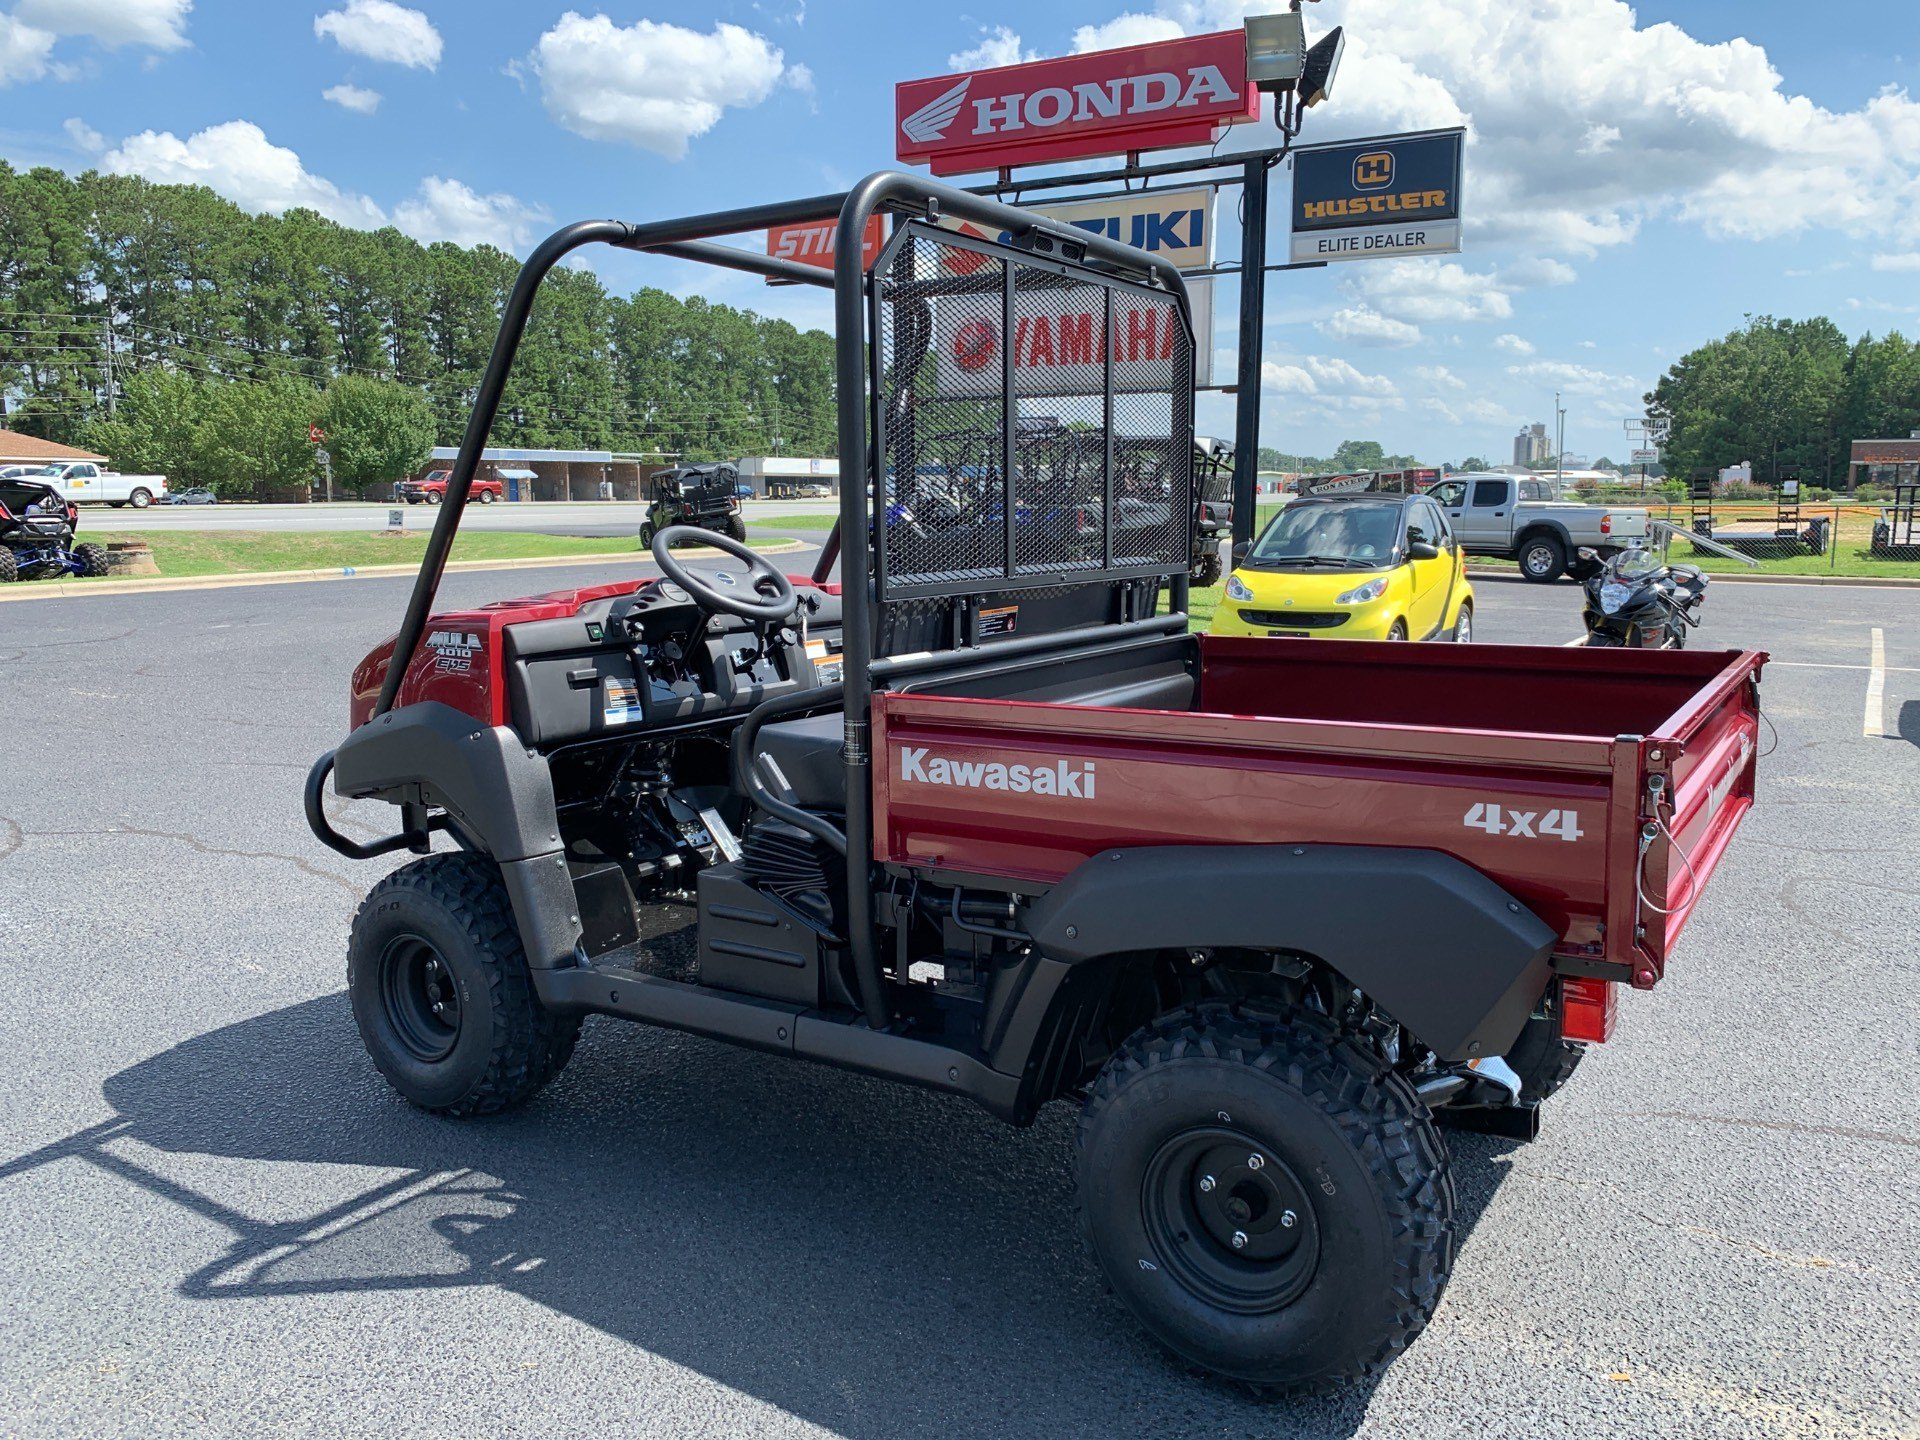 2020 Kawasaki Mule 4010 4x4 in Greenville, North Carolina